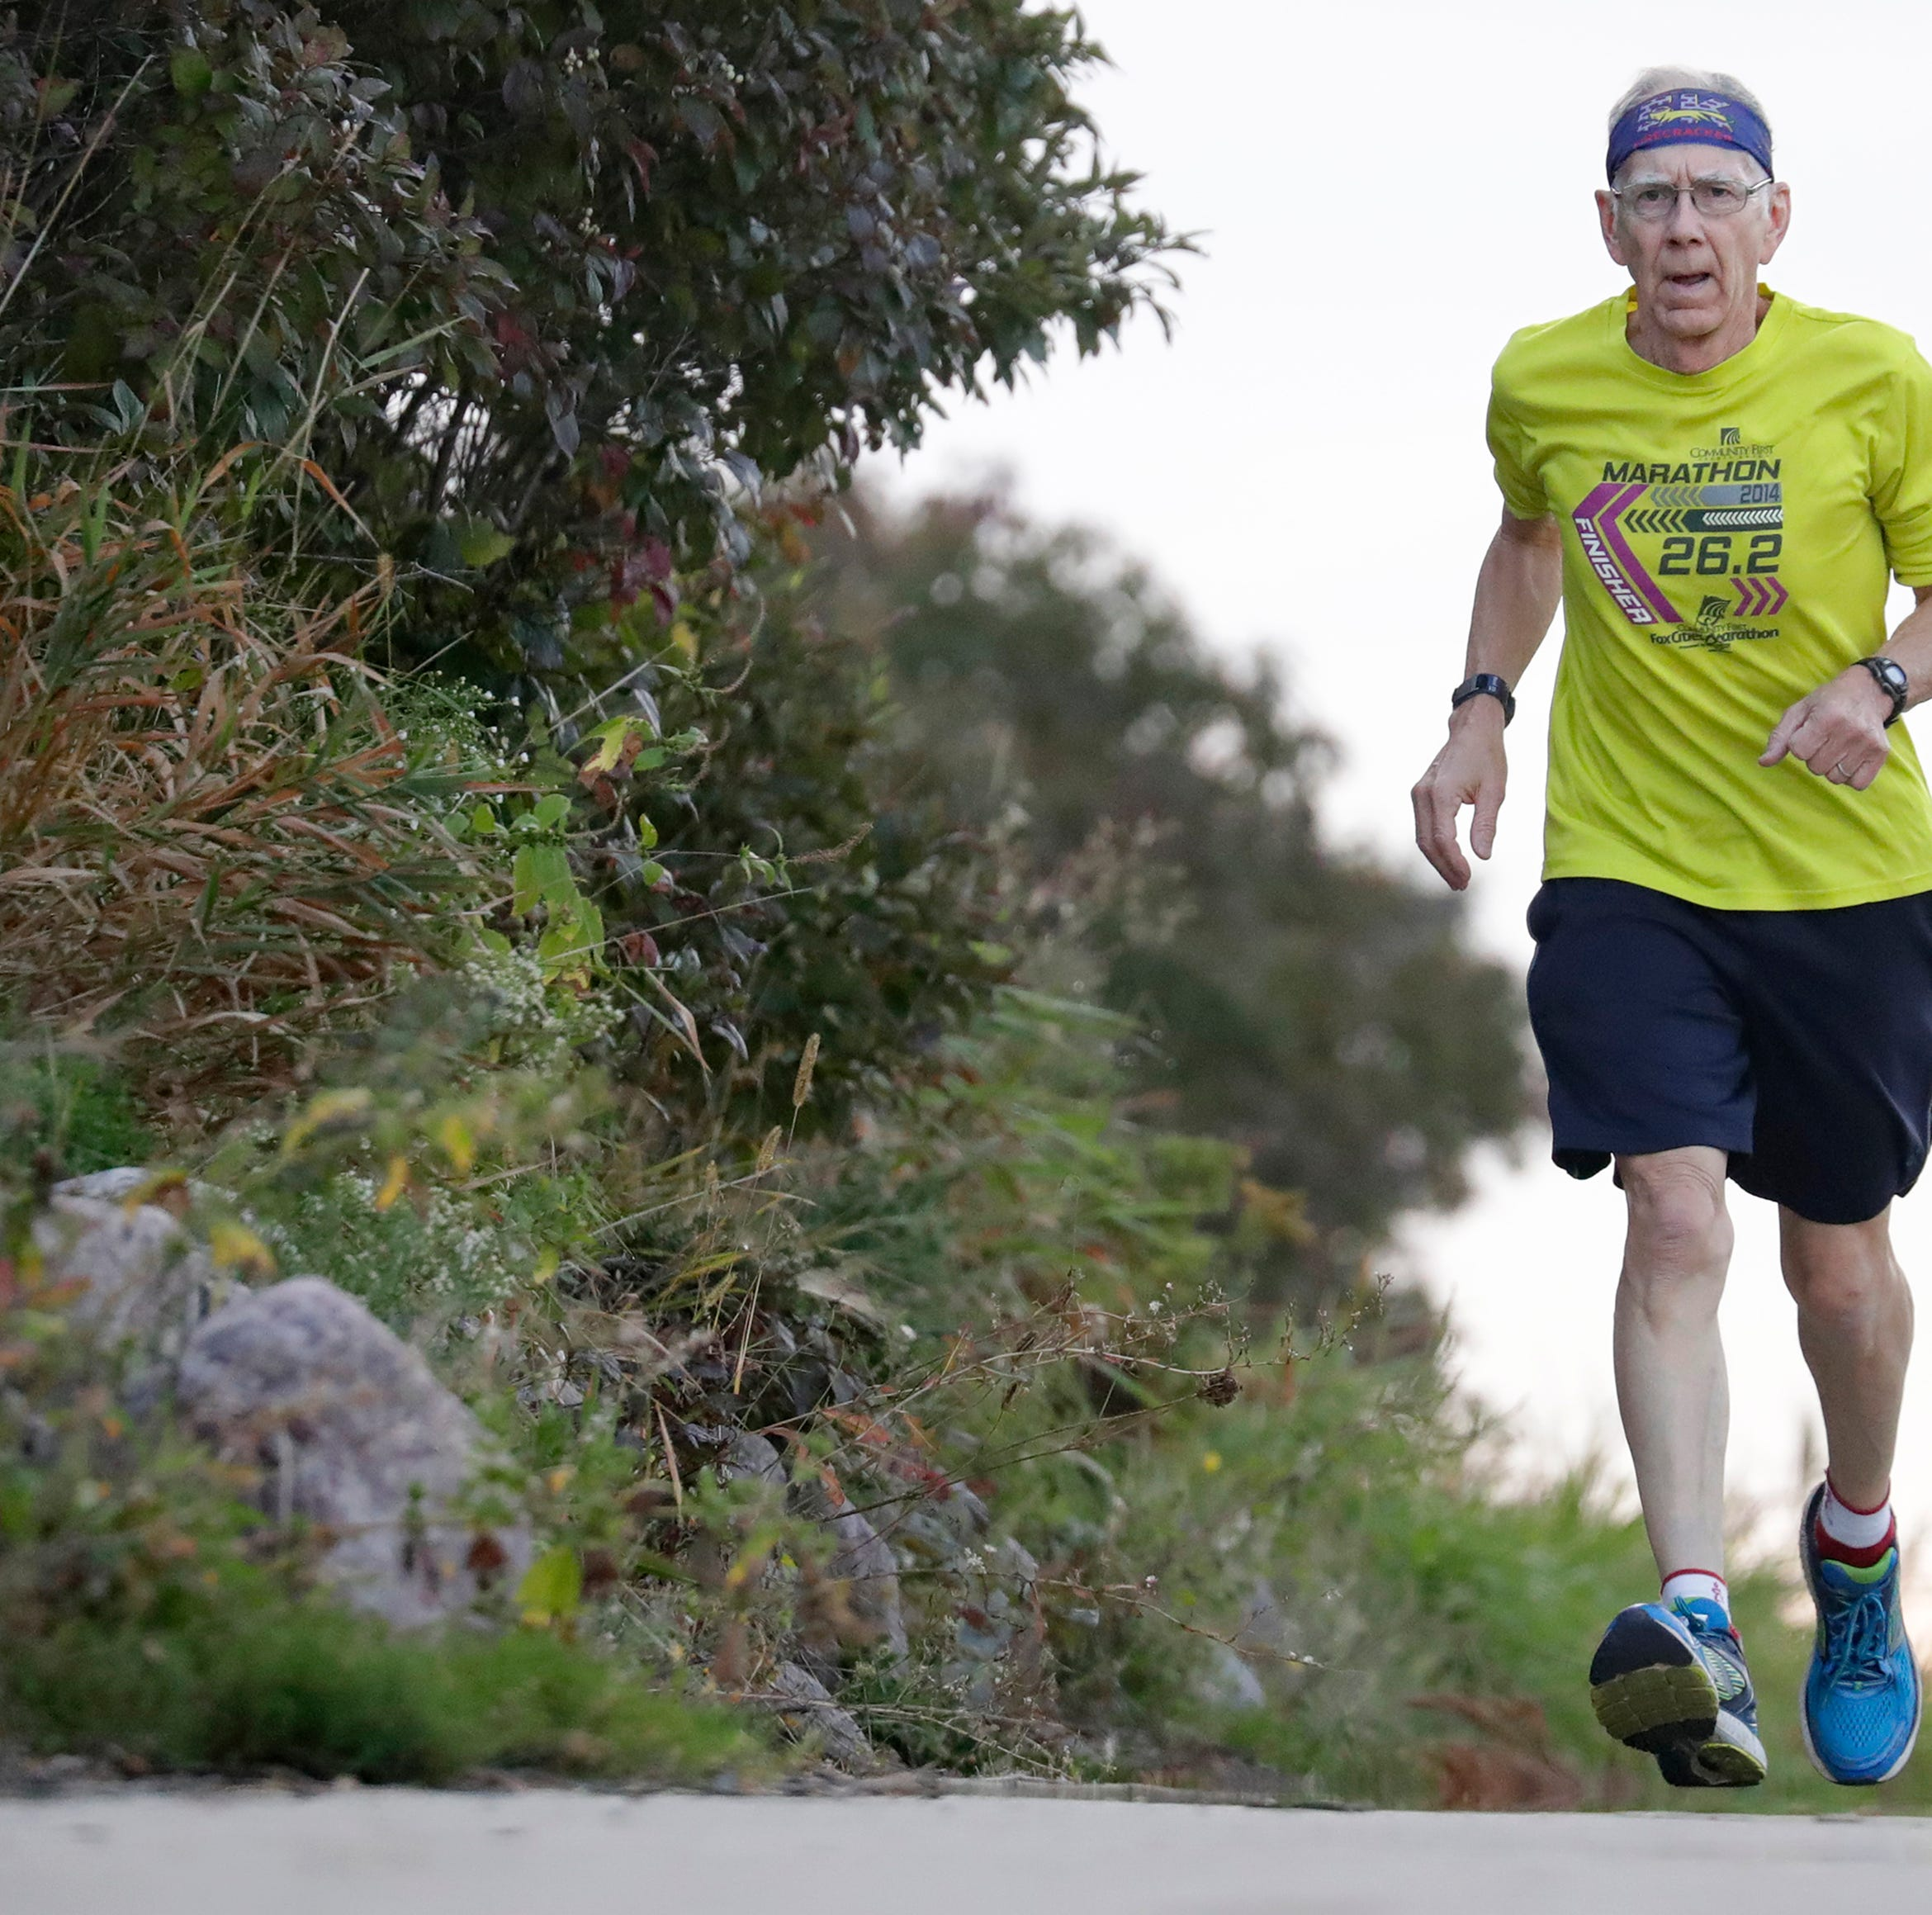 Fox Cities Marathon:  74-year-old still crazy (about running) after all these years